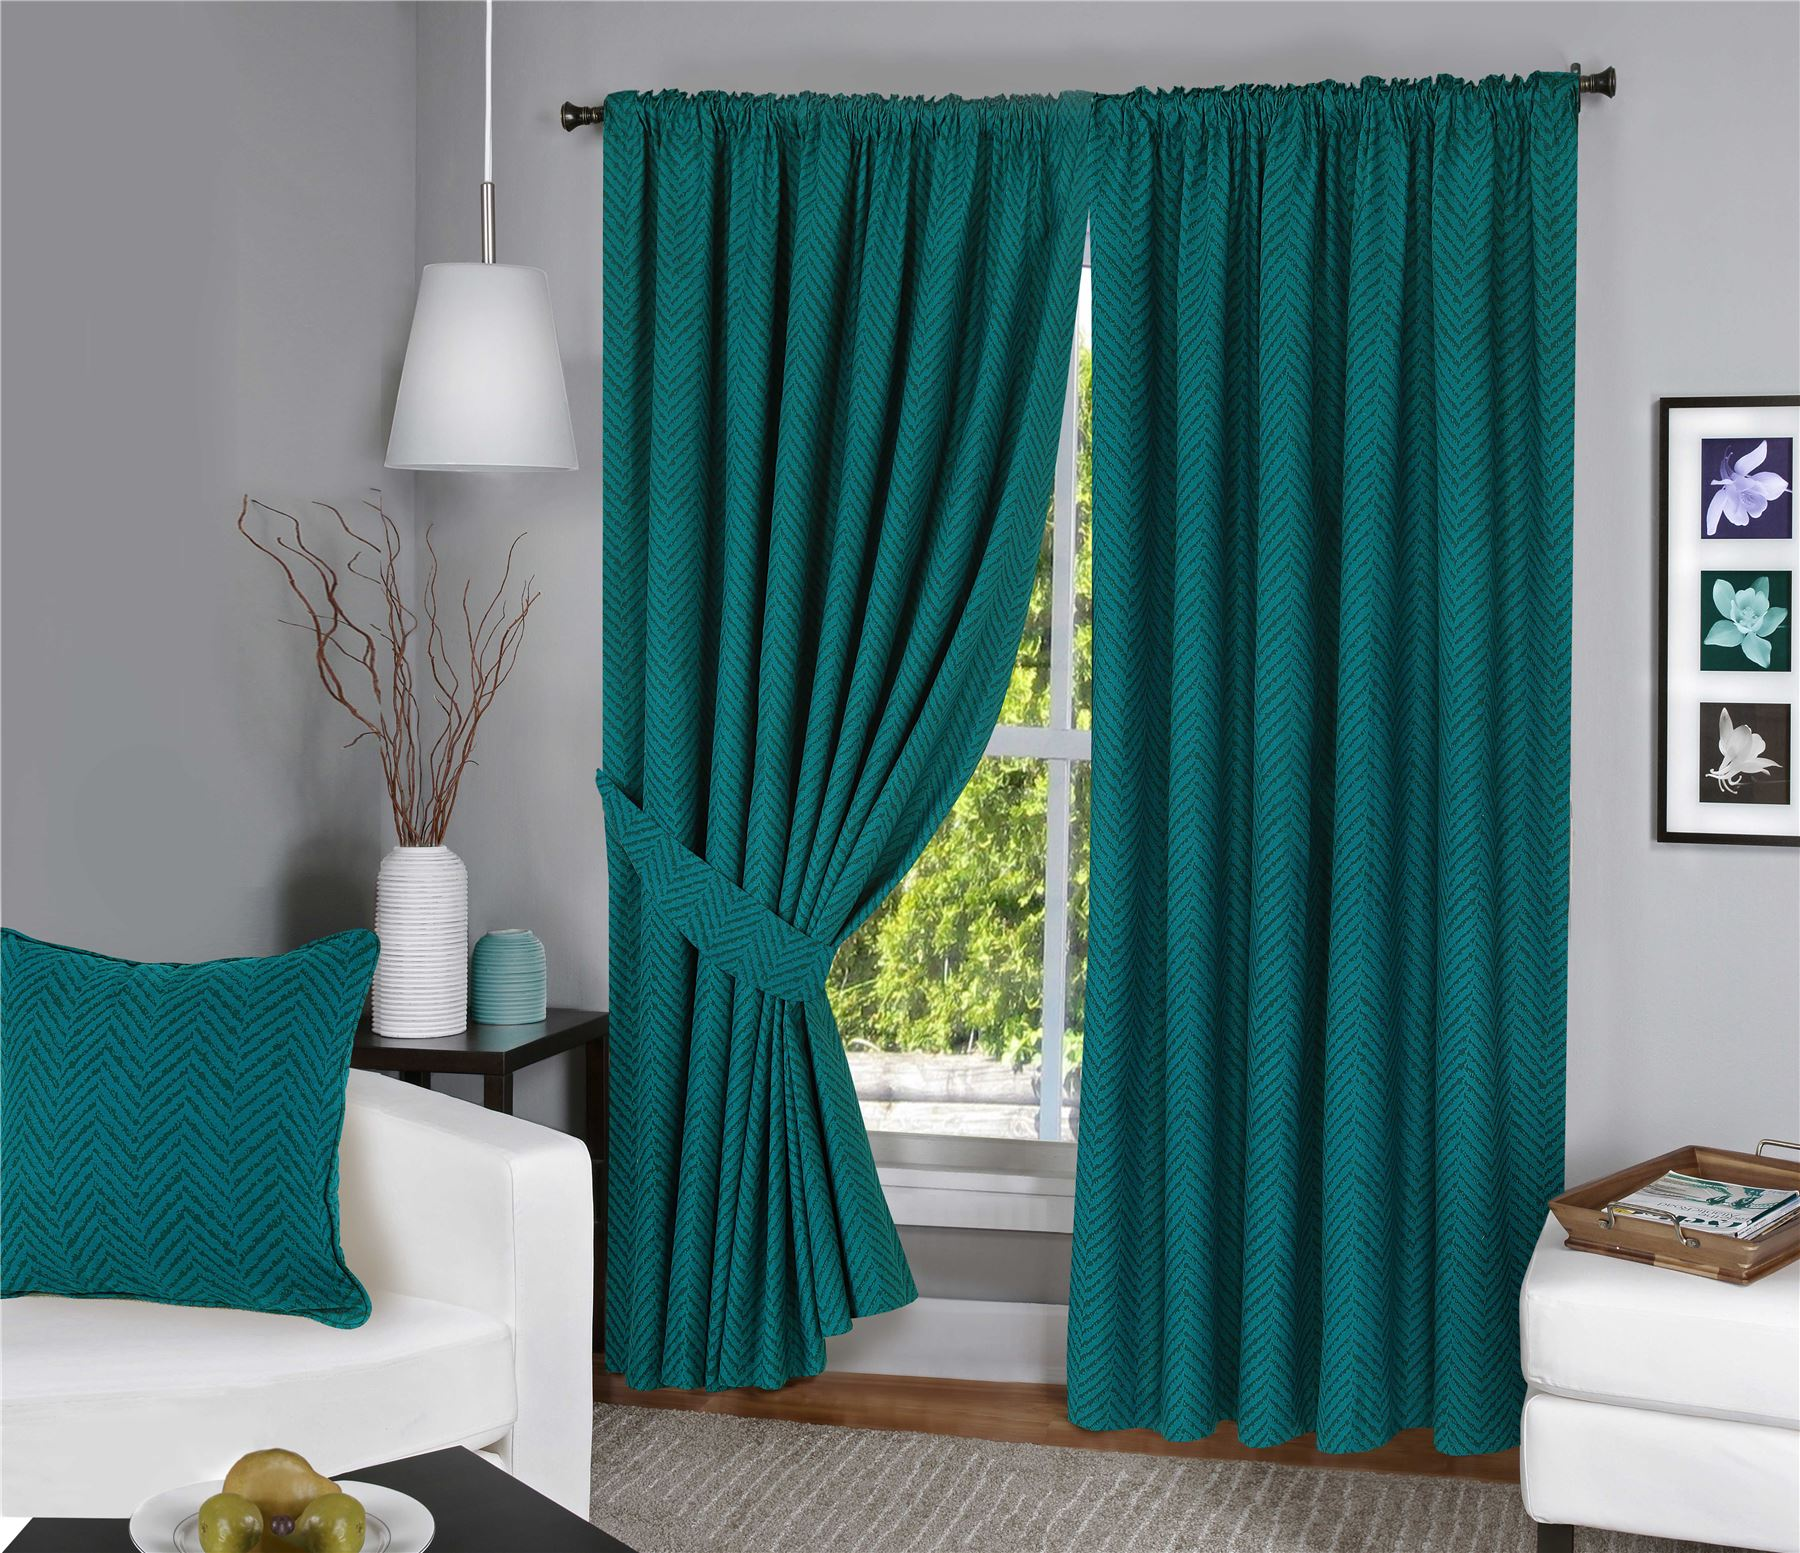 Menaal Pair of 100% Cotton Curtains Fully Lined Solar Thermal Blocking Lining